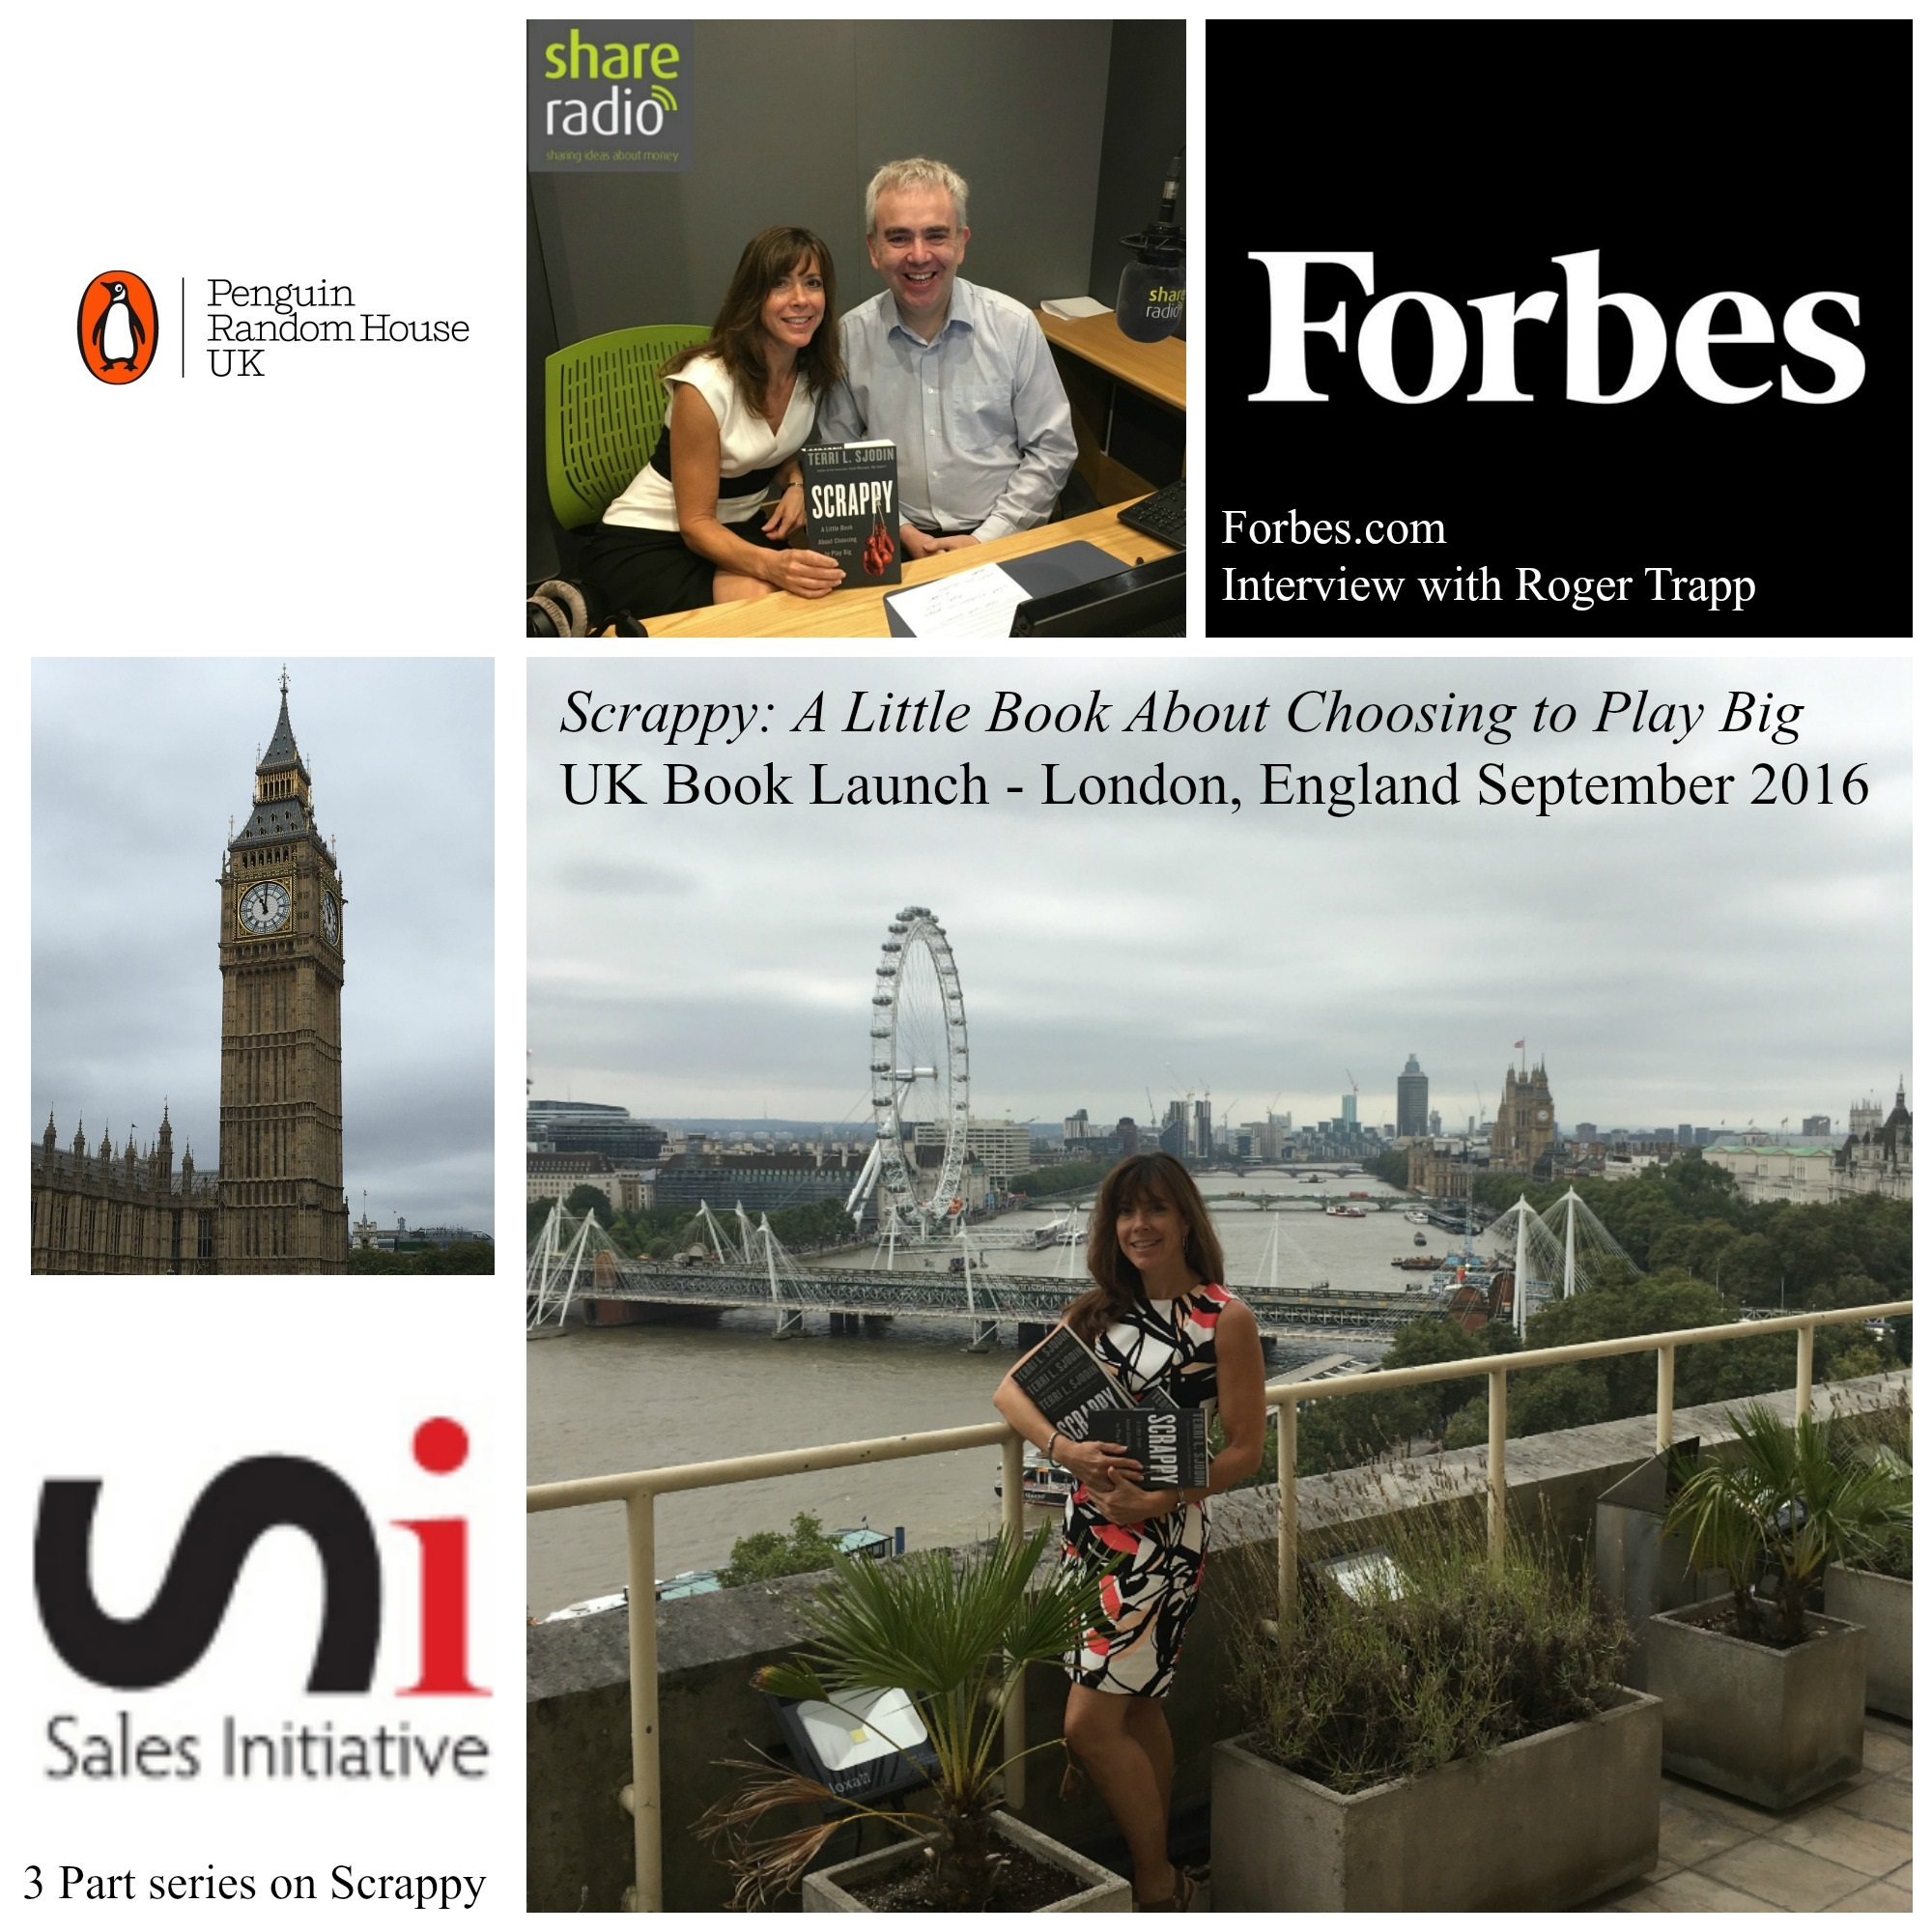 Scrappy UK book launch in London, England